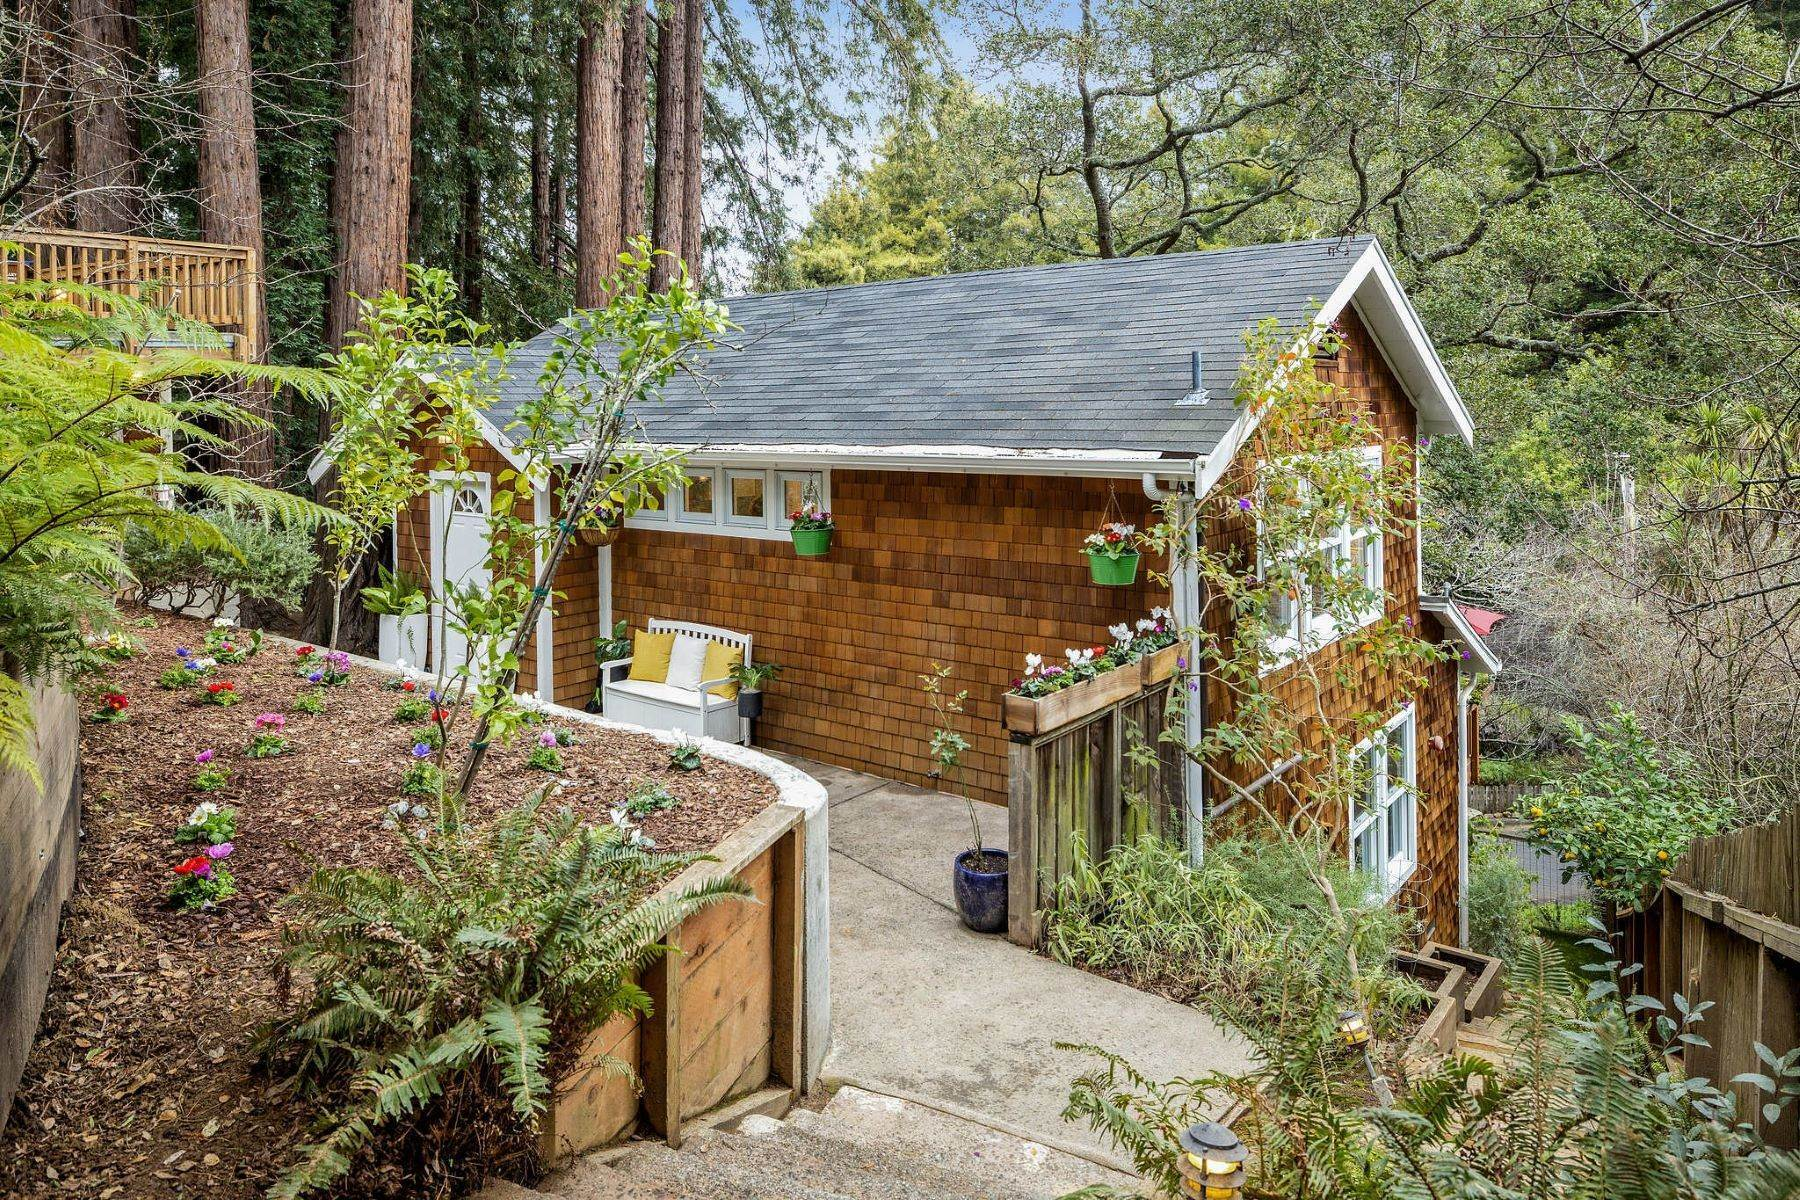 Single Family Homes for Sale at Mill Valley Charmer 18 Hazel Ave Mill Valley, California 94941 United States